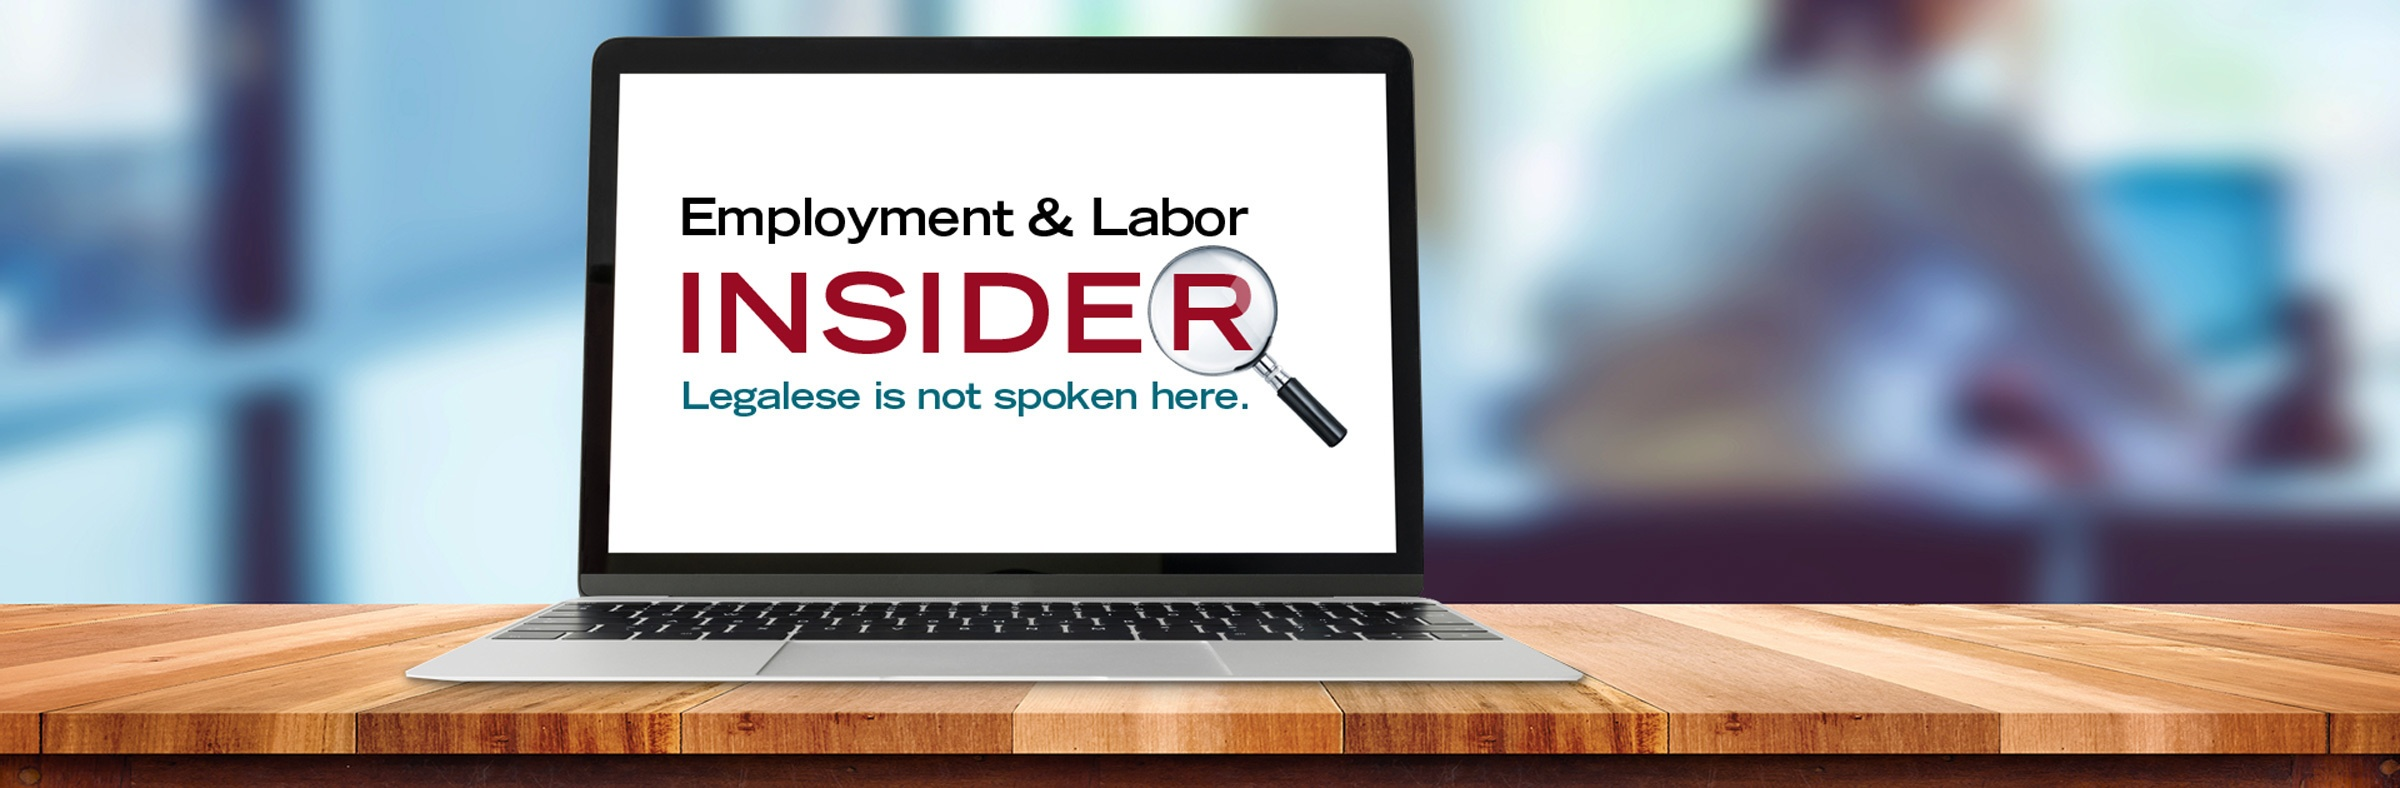 Posts by Cara Crotty: Employment & Labor Insider